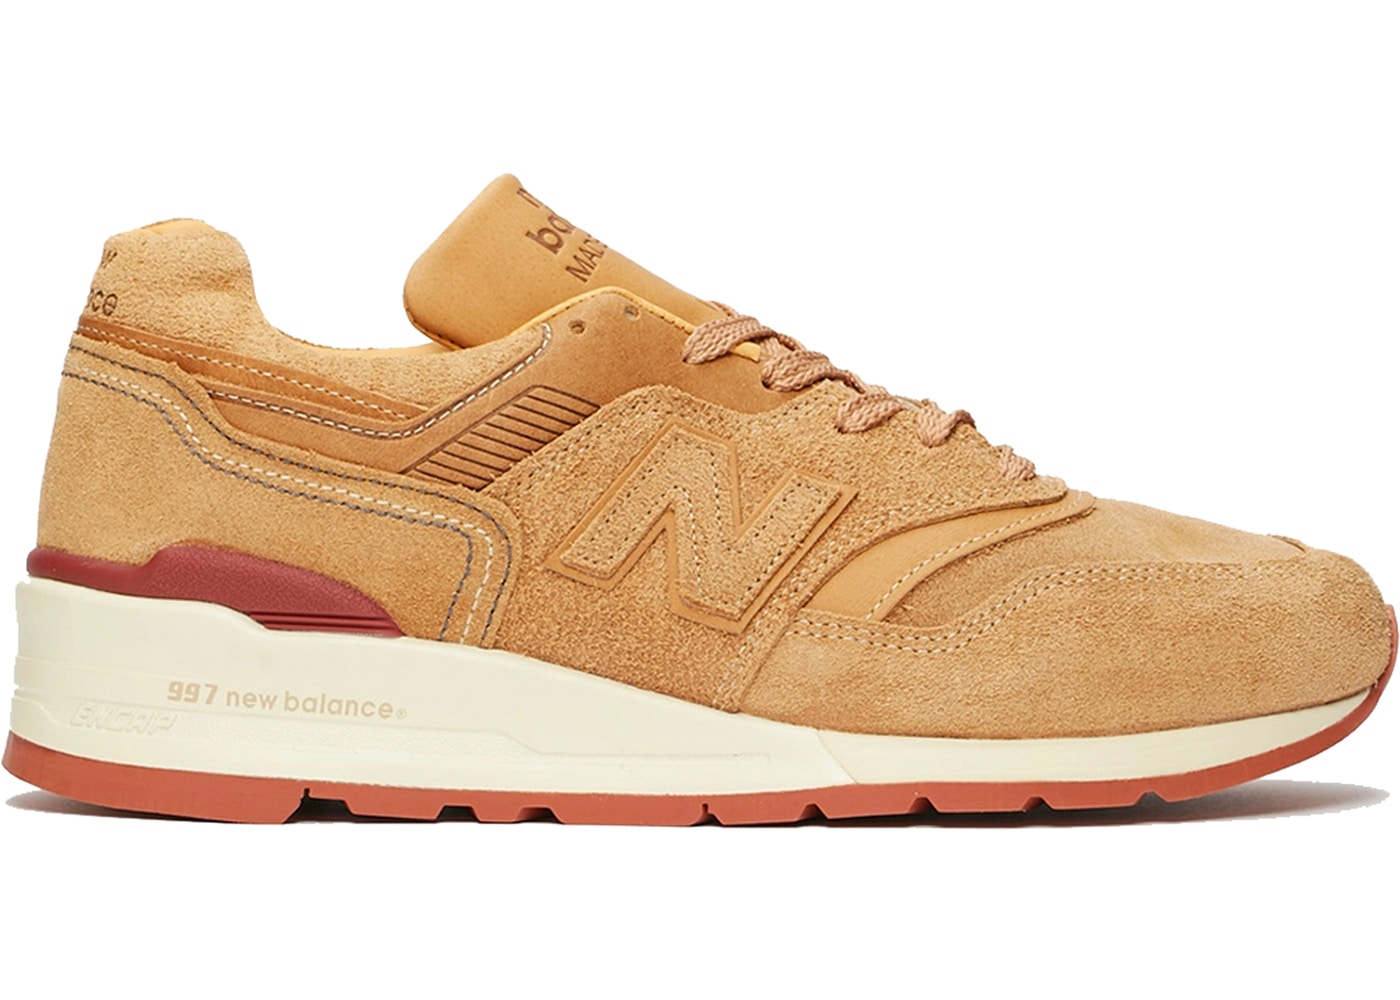 reputable site 2d886 25eec New Balance 997 Red Wing